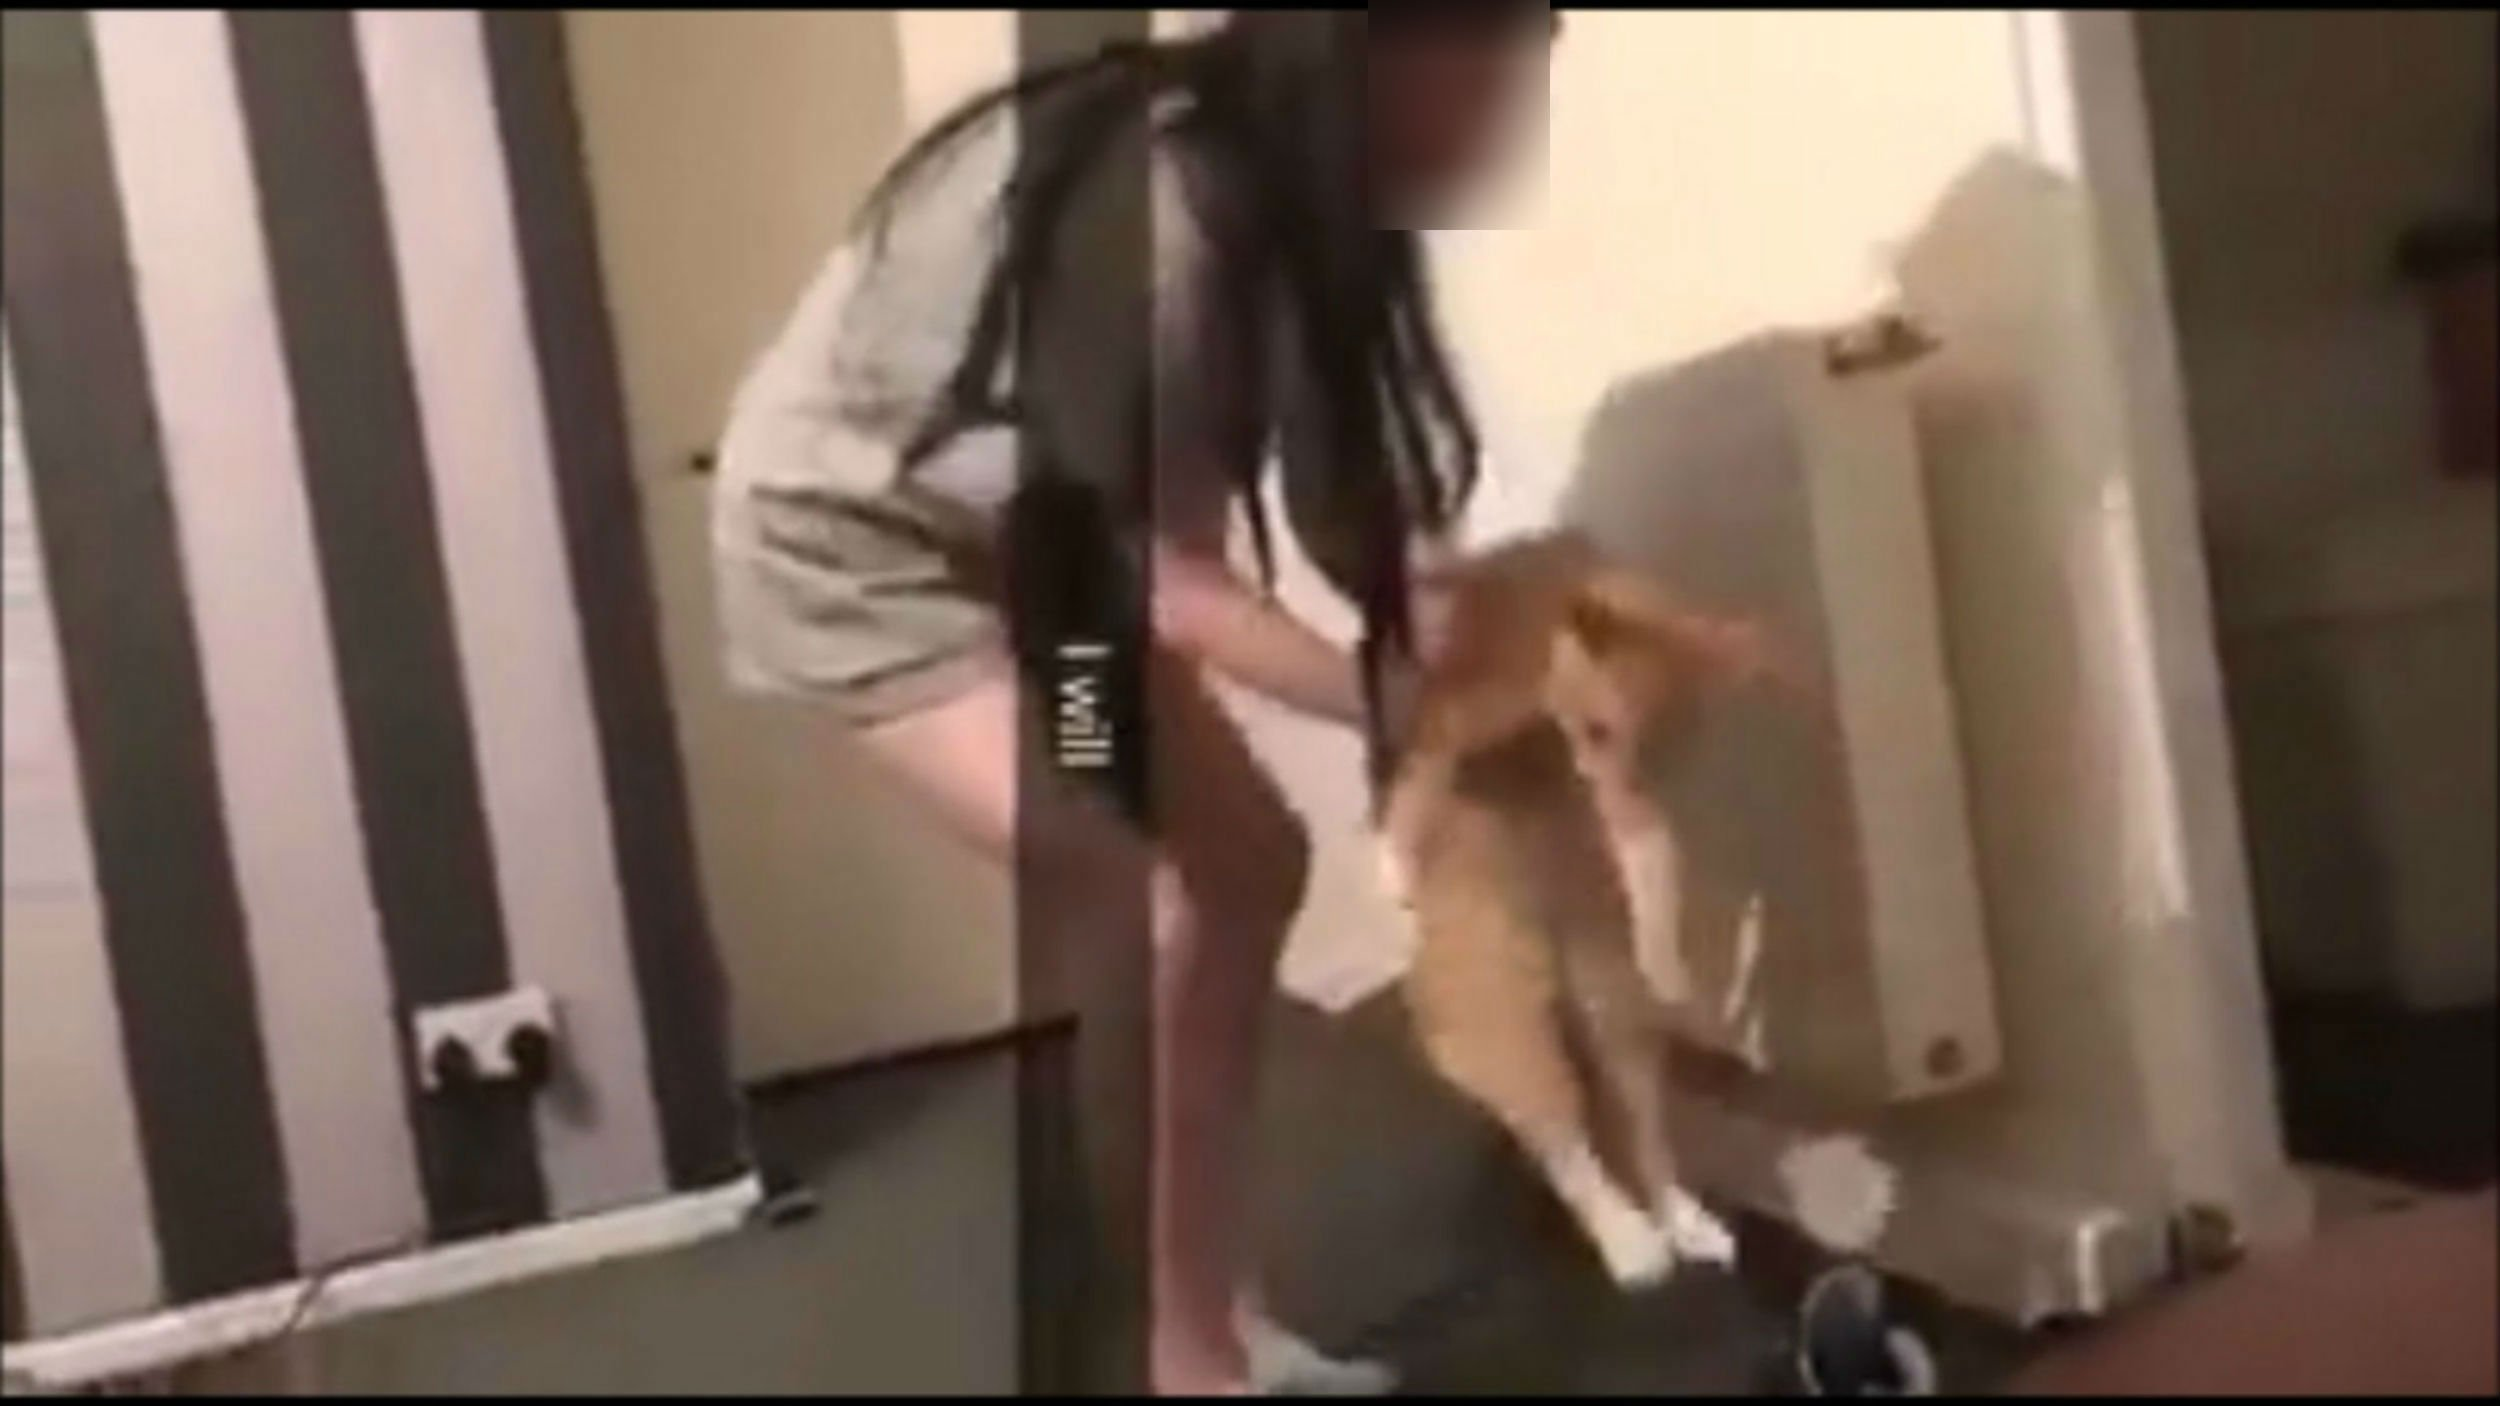 """TWO Aberdeen teenagers are facing threats of violence after video emerged which appeared to show them mistreating a cat. The clip shows one of the girls appear to hurl the cat towards a wall, after which it crouches under a heater. The same animal is then thrown towards the camera. After the video - which is said to be a """"couple"""" of years old - was posted to Facebook on Saturday, viewers reacted with disgust. And the two girls named in the post, who are thought to be 17 or 18, have now received online threats including to break both their knees. Another said they hoped someone put the girl in the video """"six feet under"""". The clip was posted to Facebook last Saturday by Aberdeen community page, Aberdeen Guardians."""